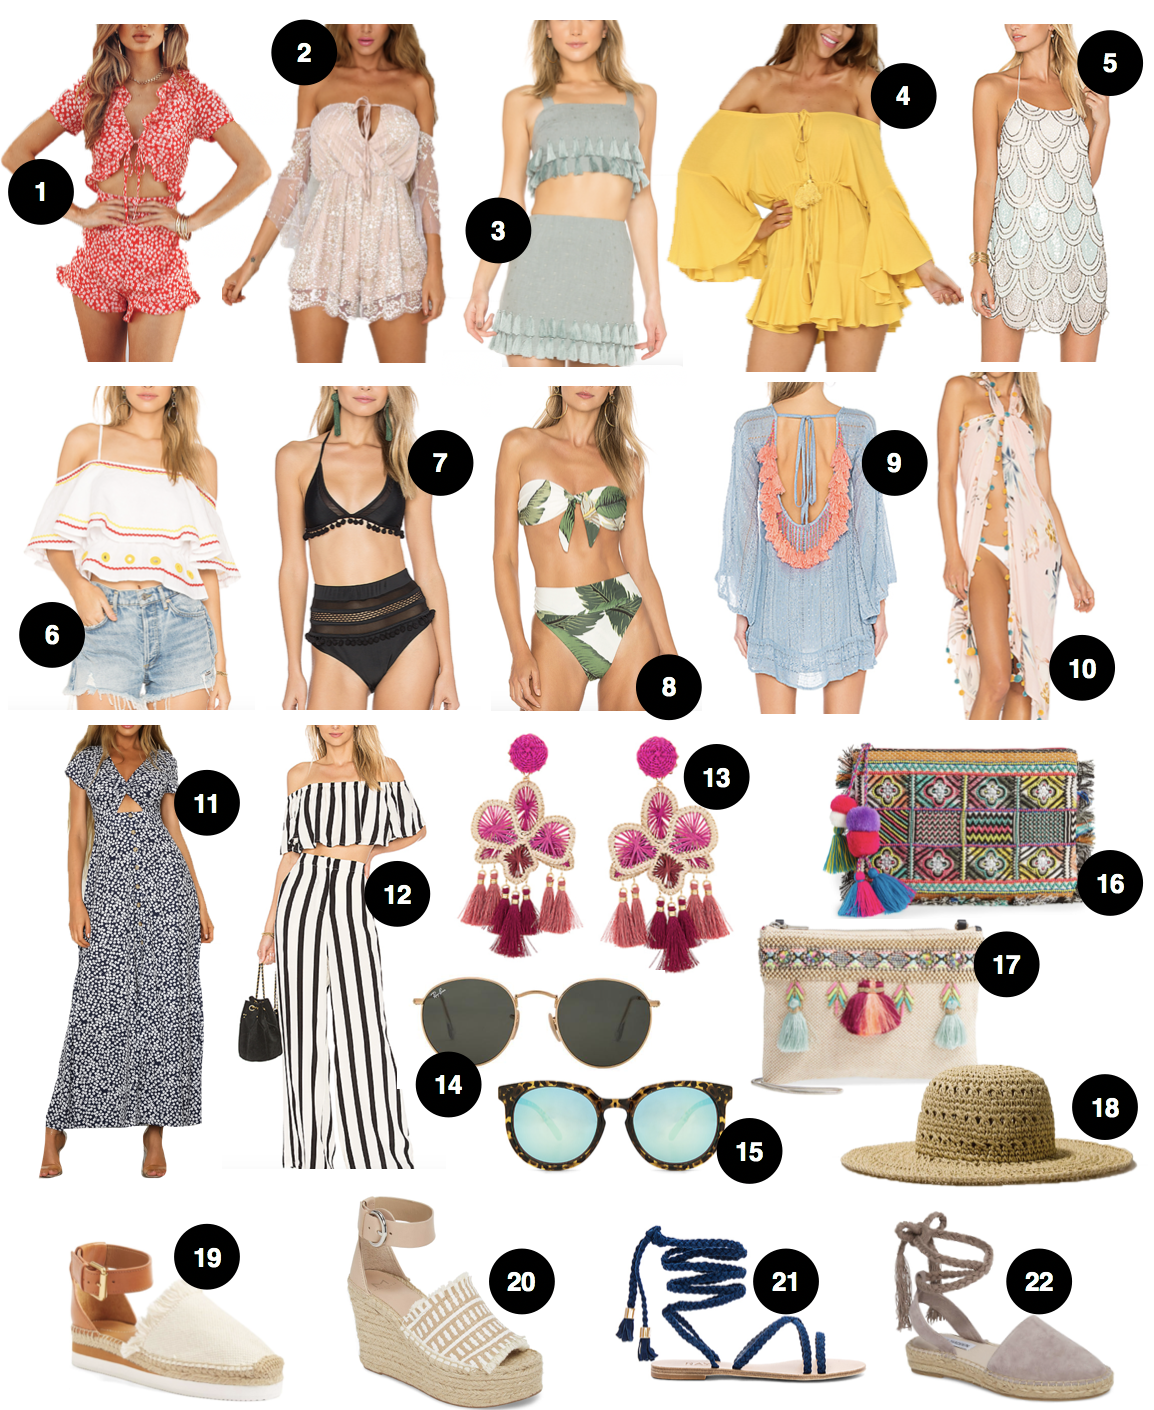 Spring clothing and spring break clothing, accessories, and shoes roundup! Spring break outfit ideas! Daily Dose of Charm by Lauren Lindmark